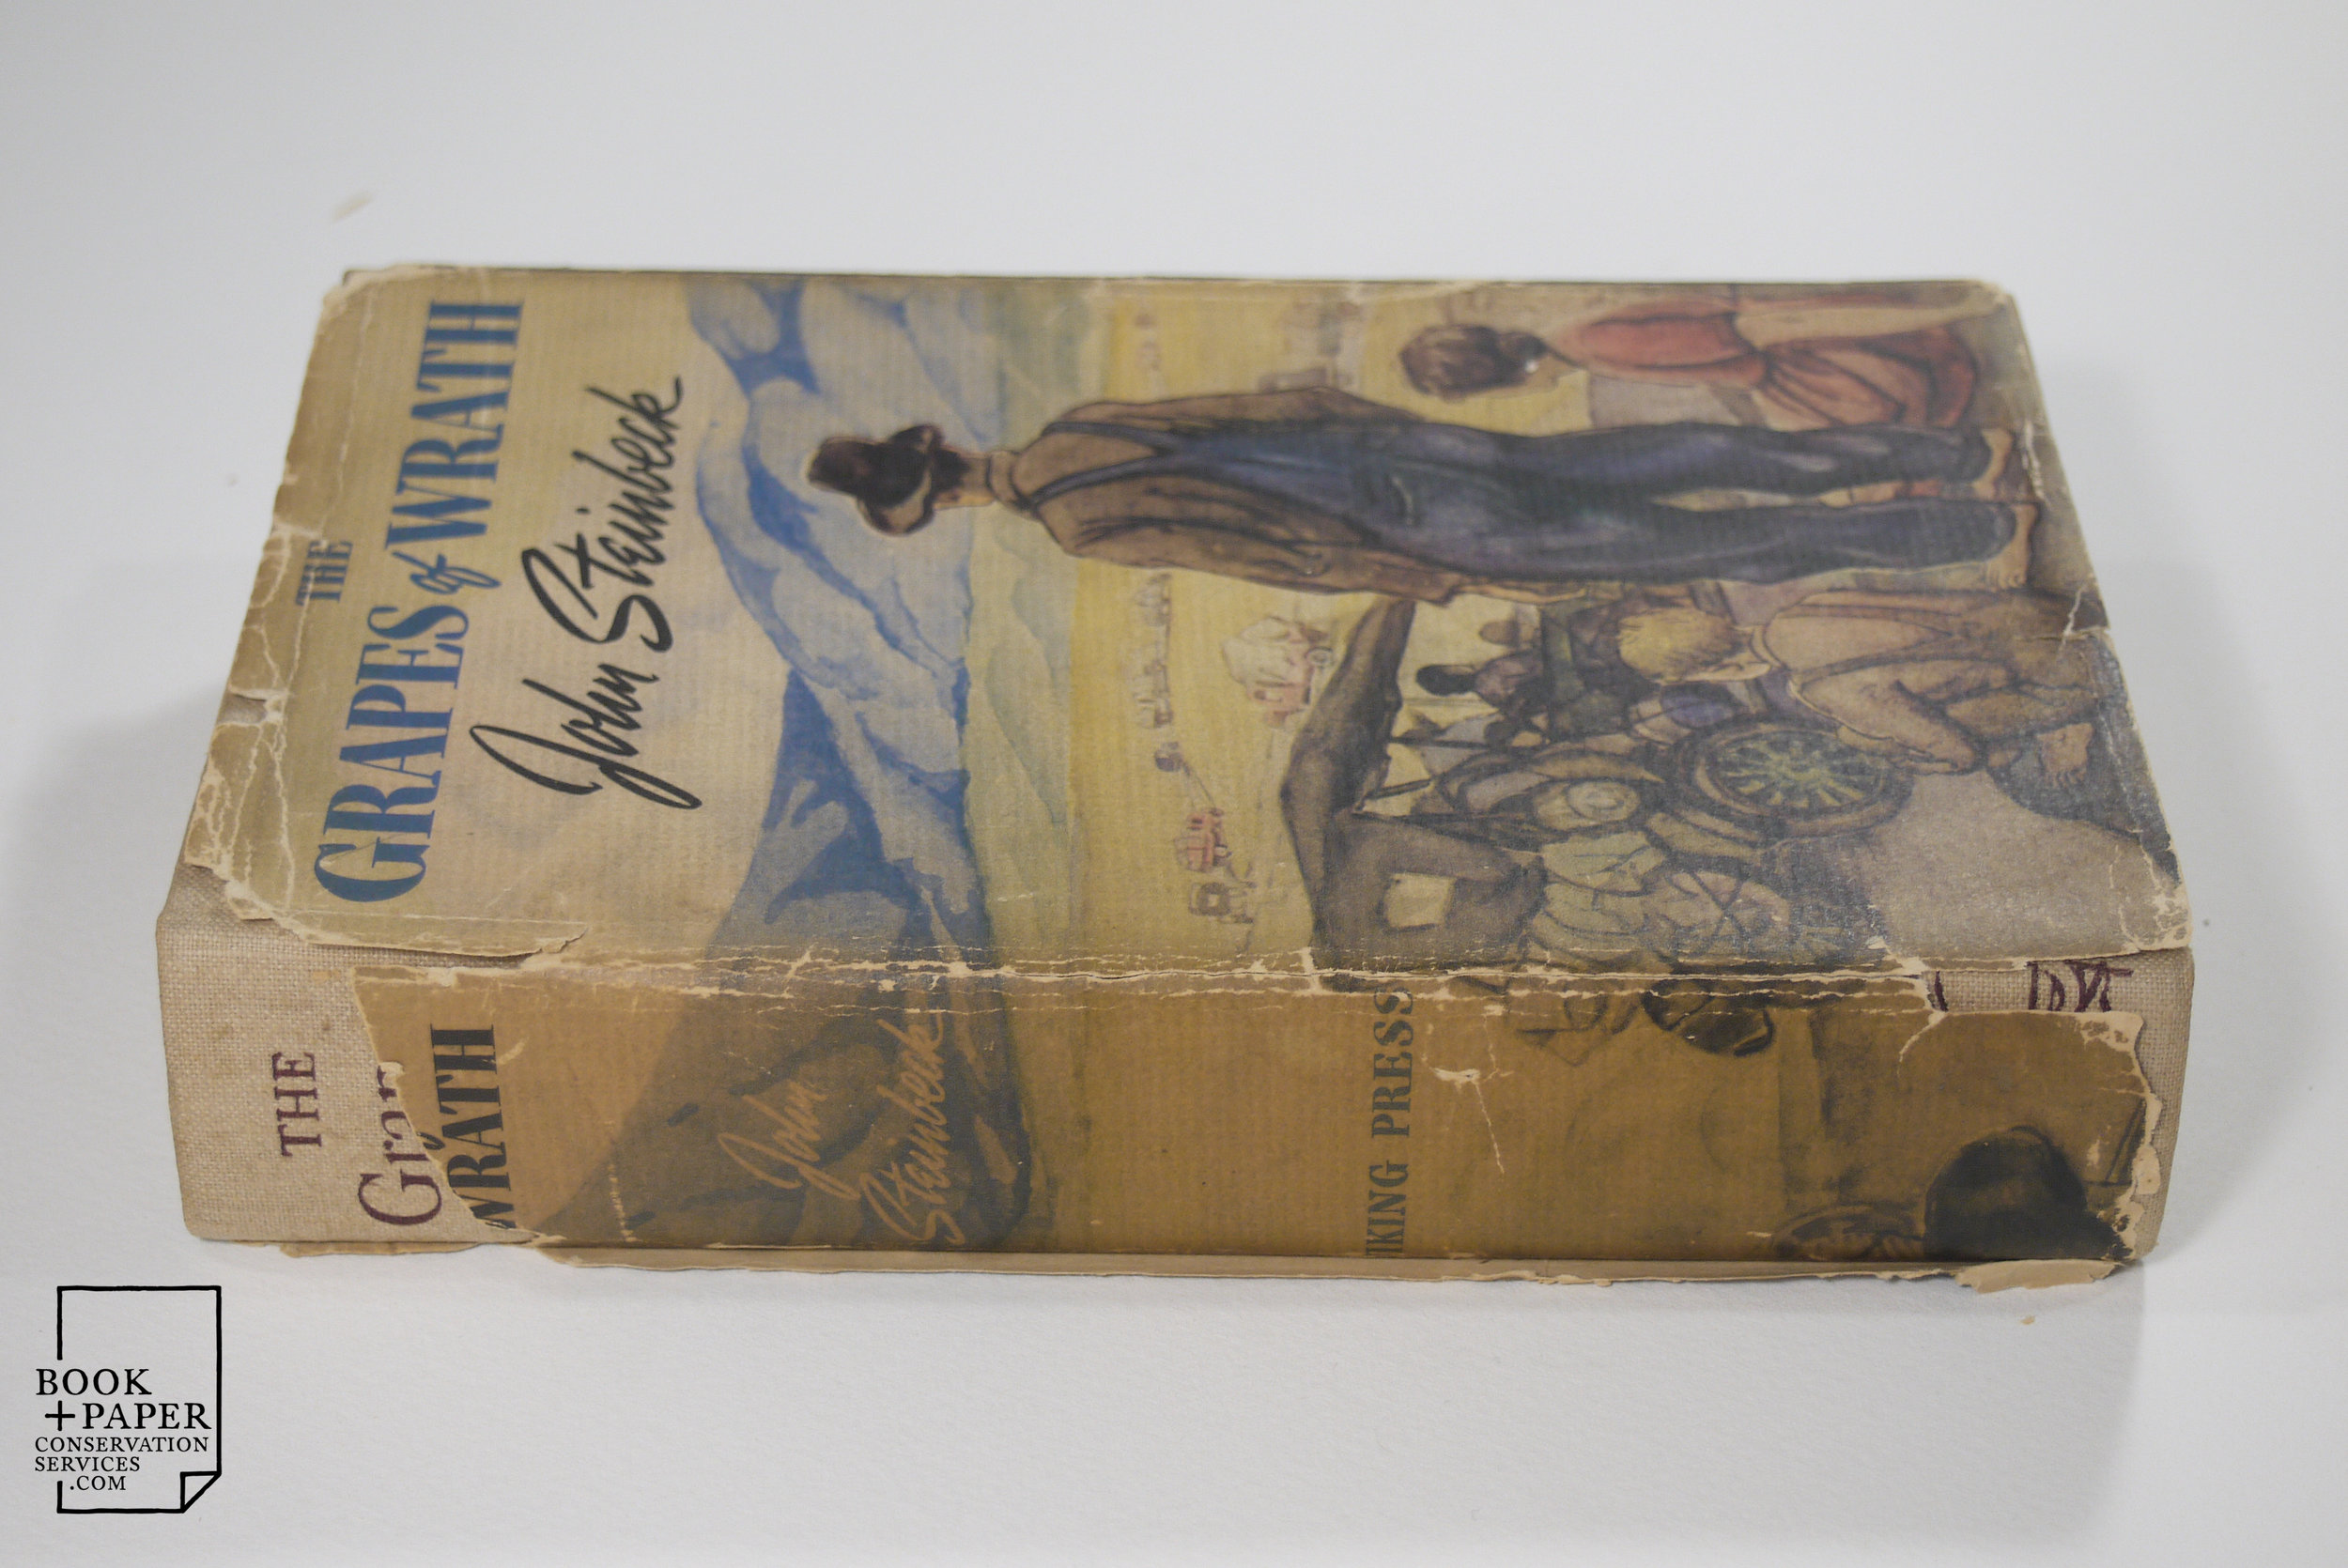 The Grapes of Wrath, 1st edition, front cover and spine before restoration.